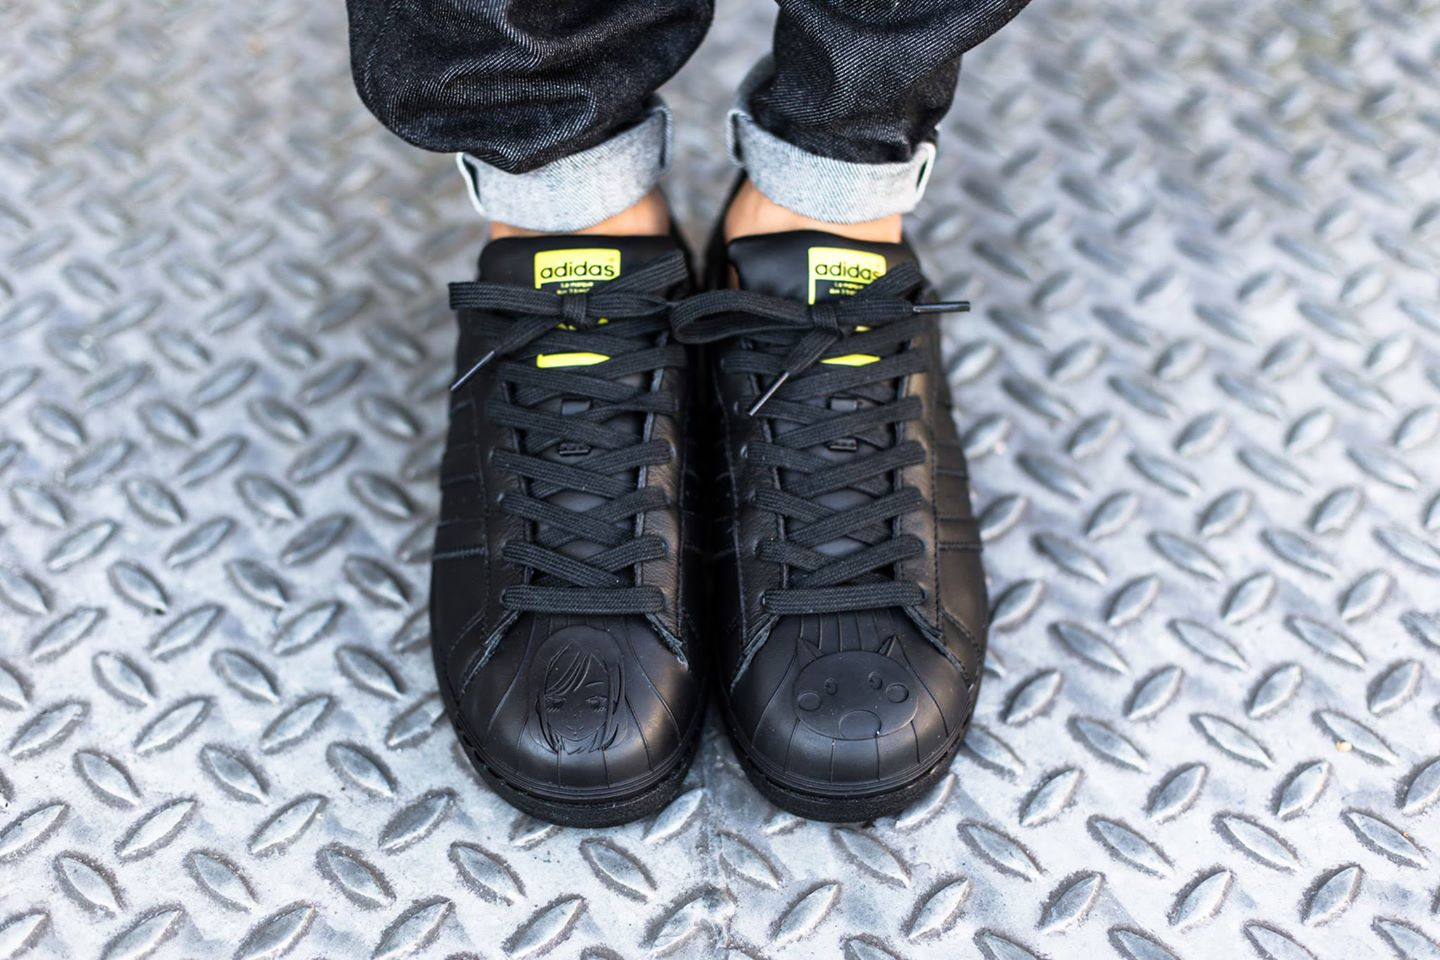 Adidas Superstar Pharrell Williams Black